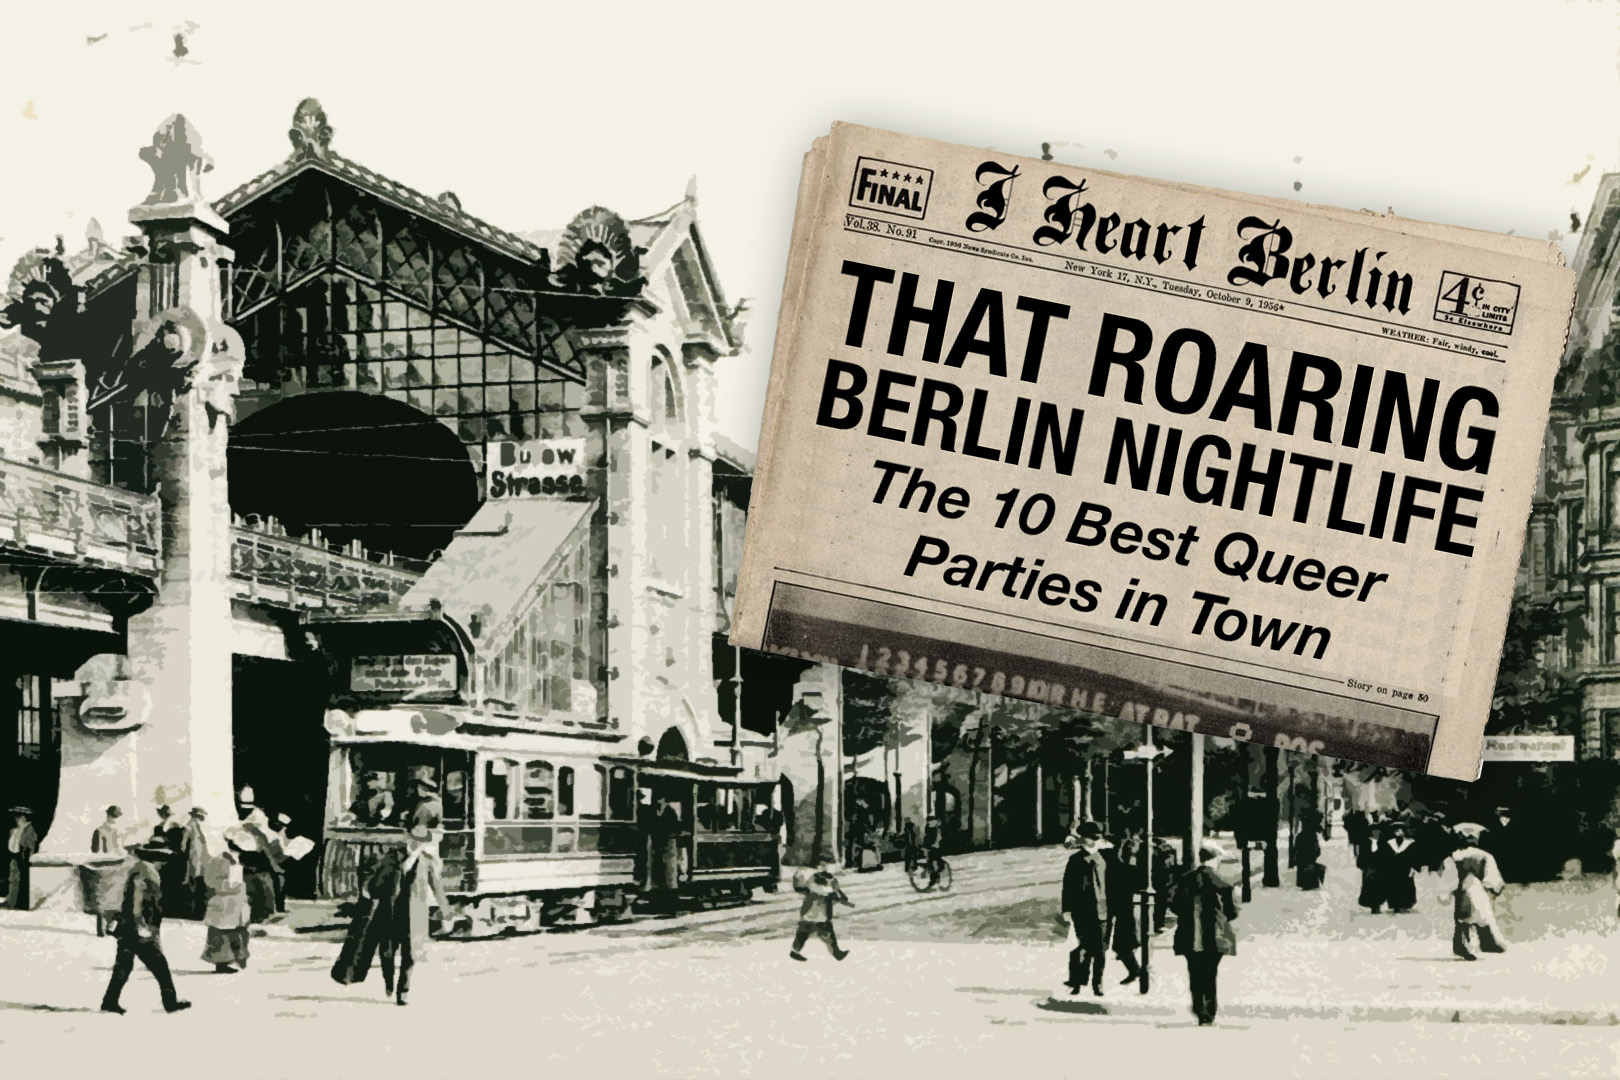 History Phone: The 20s Guide to Naughty & Queer Berlin